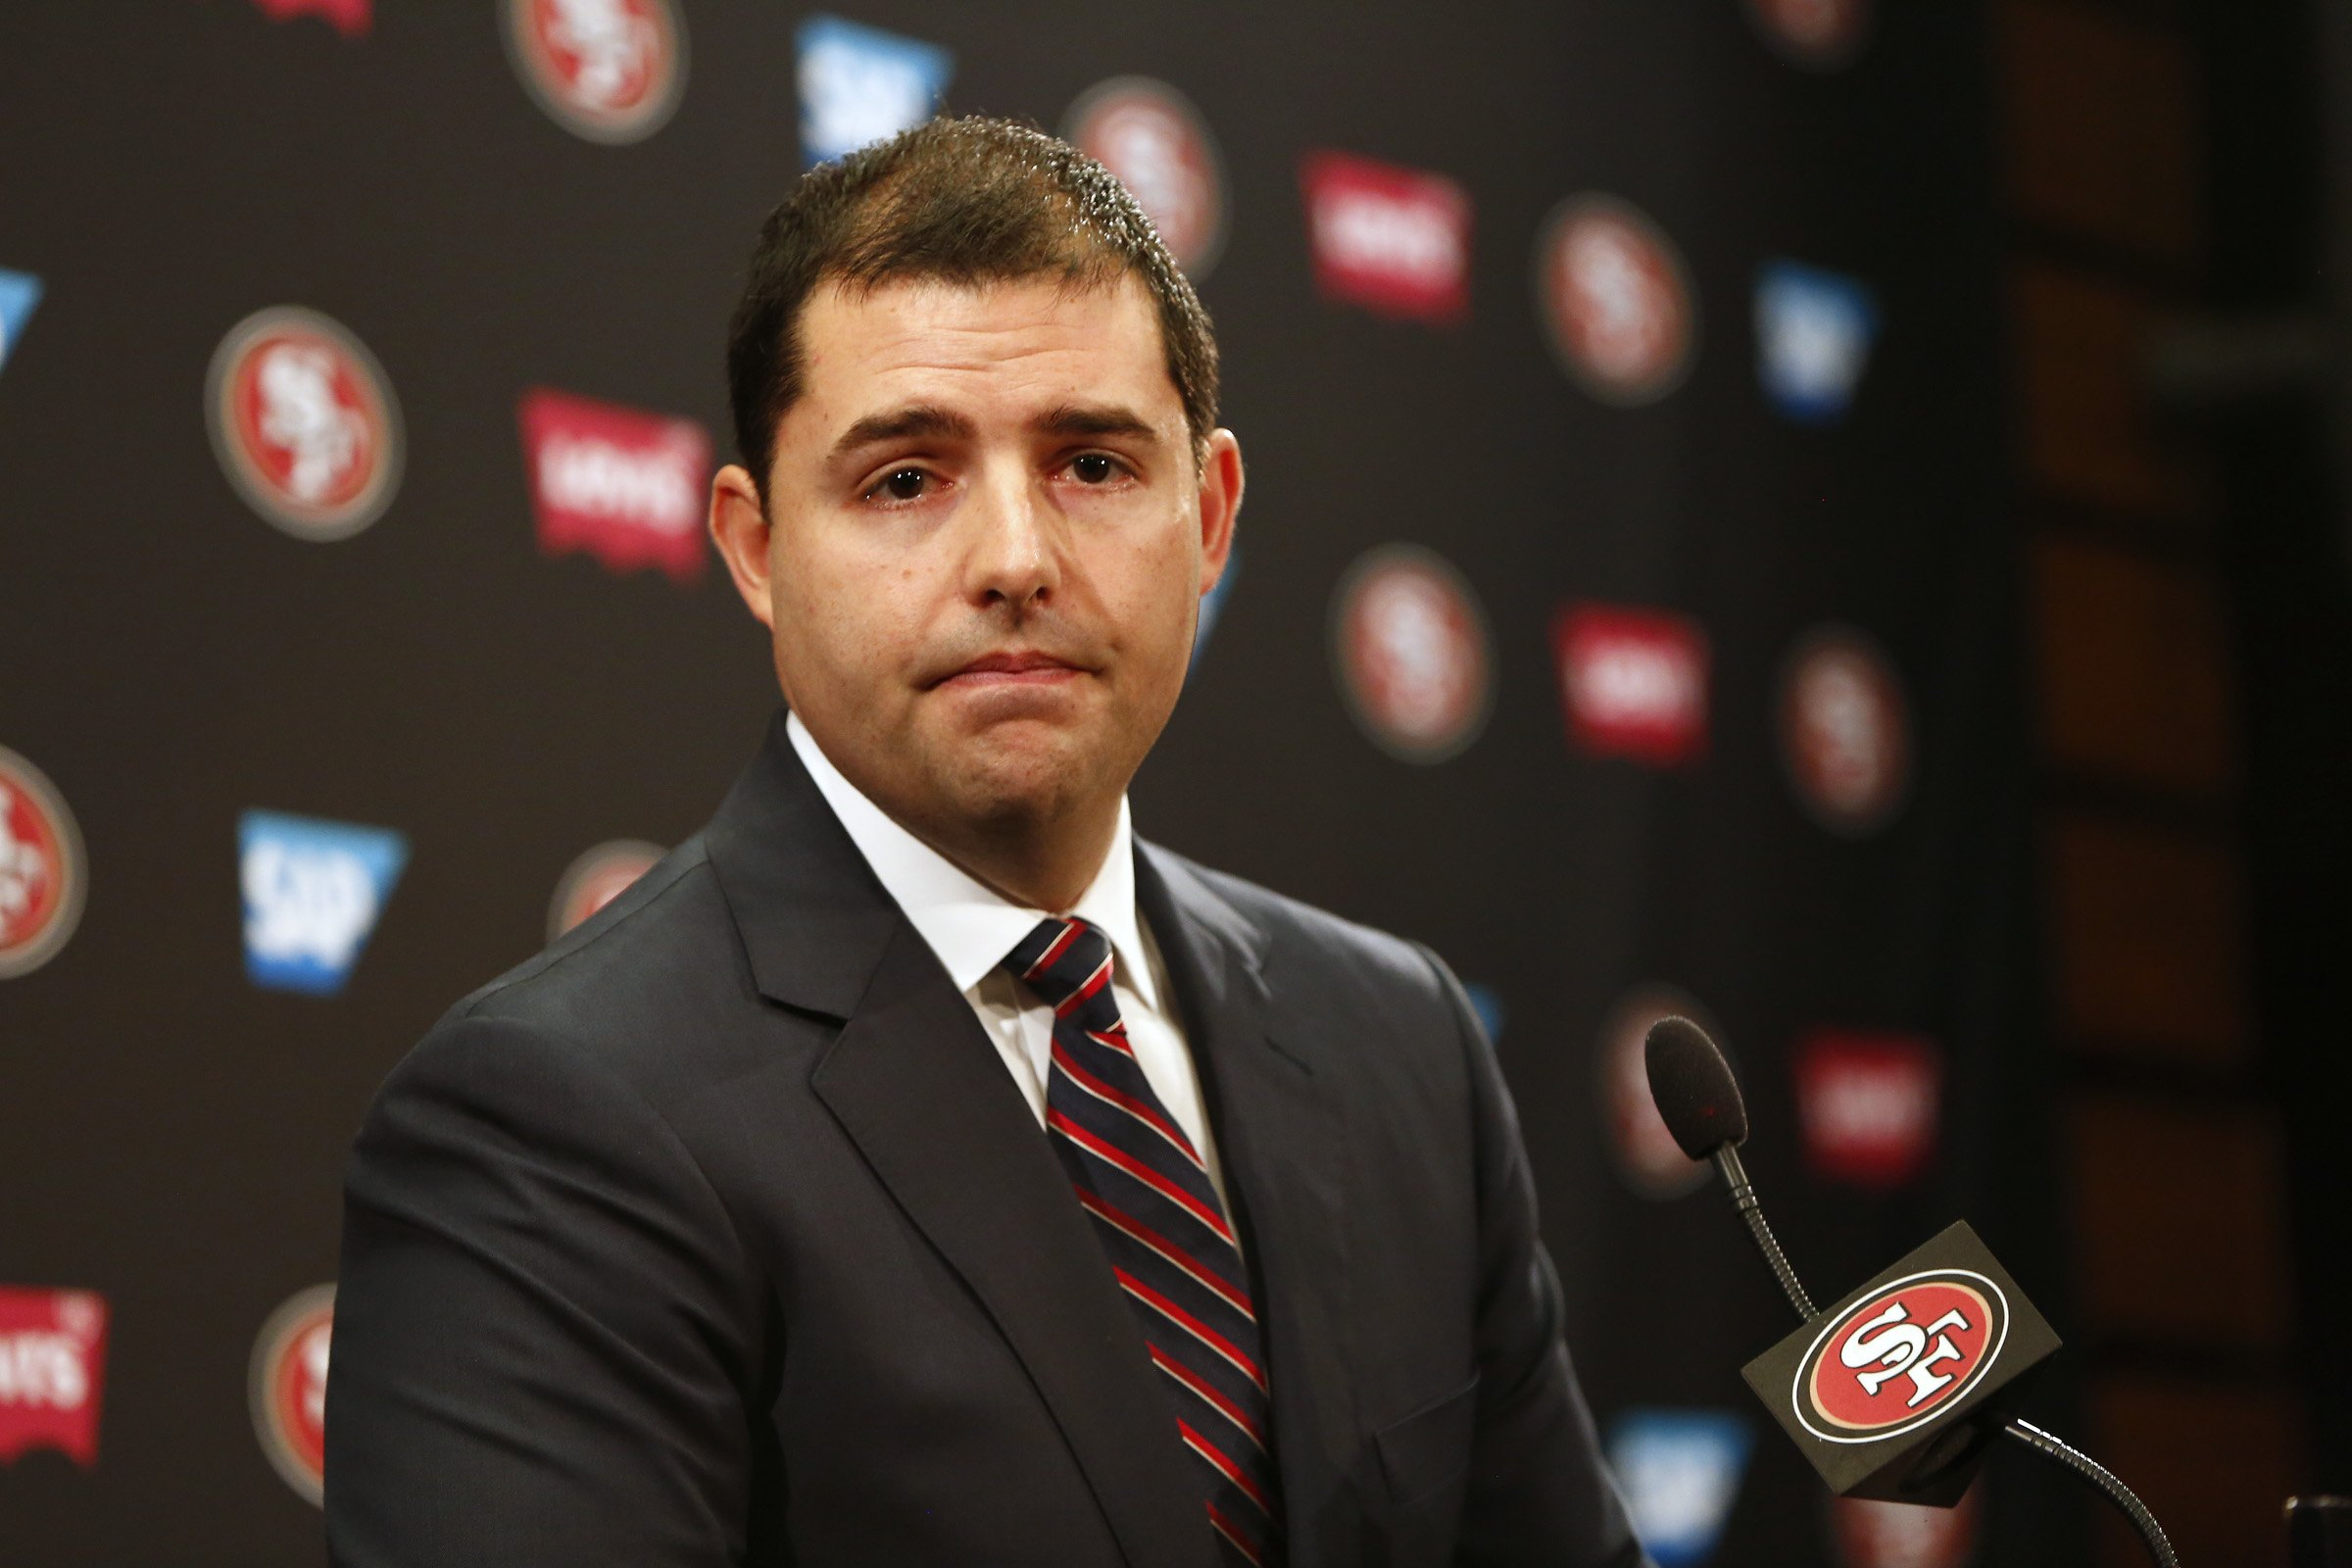 'Callous and offensive': Jed York slams Donald Trump